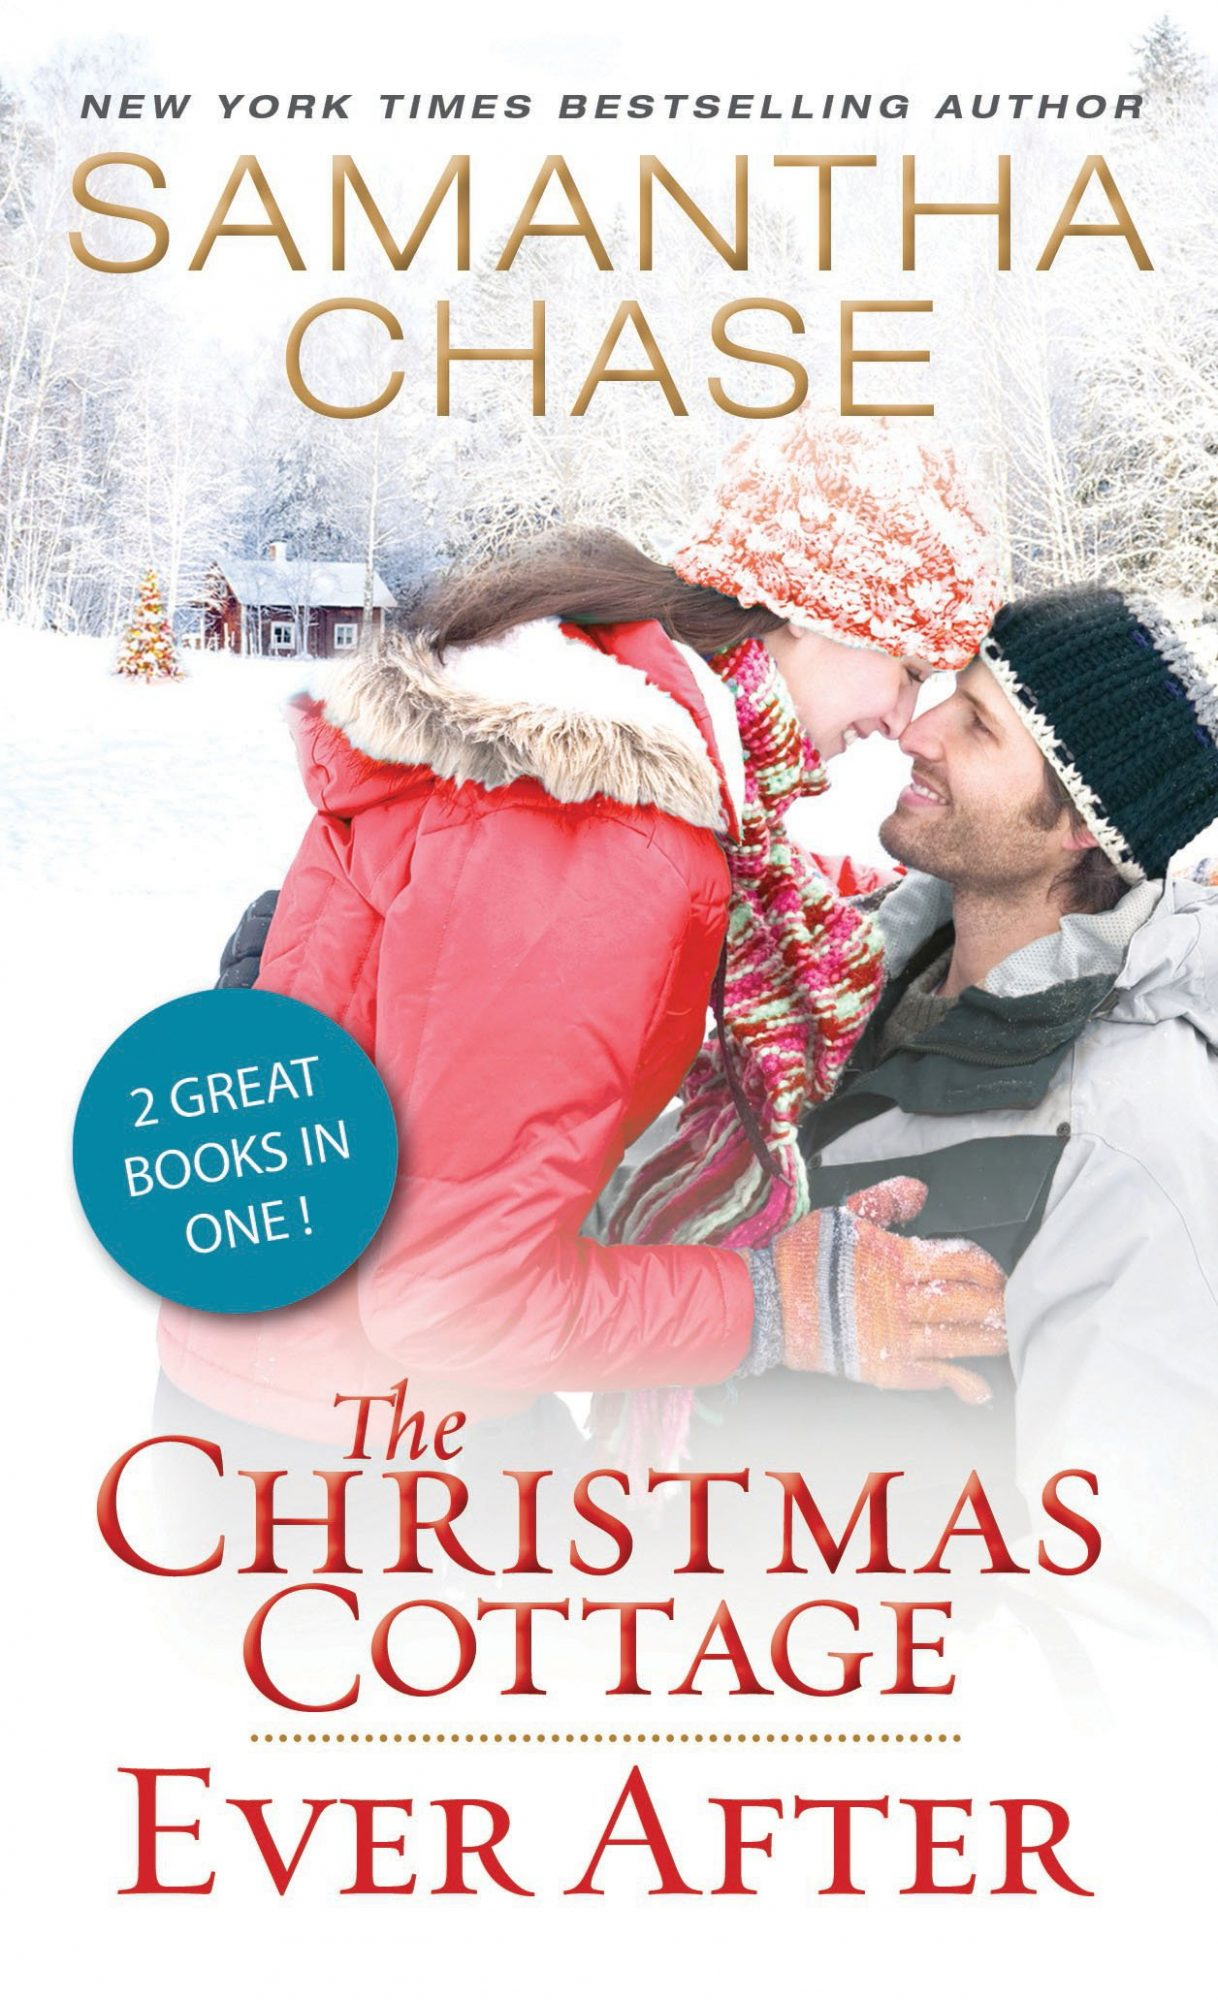 The Christmas Cottage by Samantha Chase